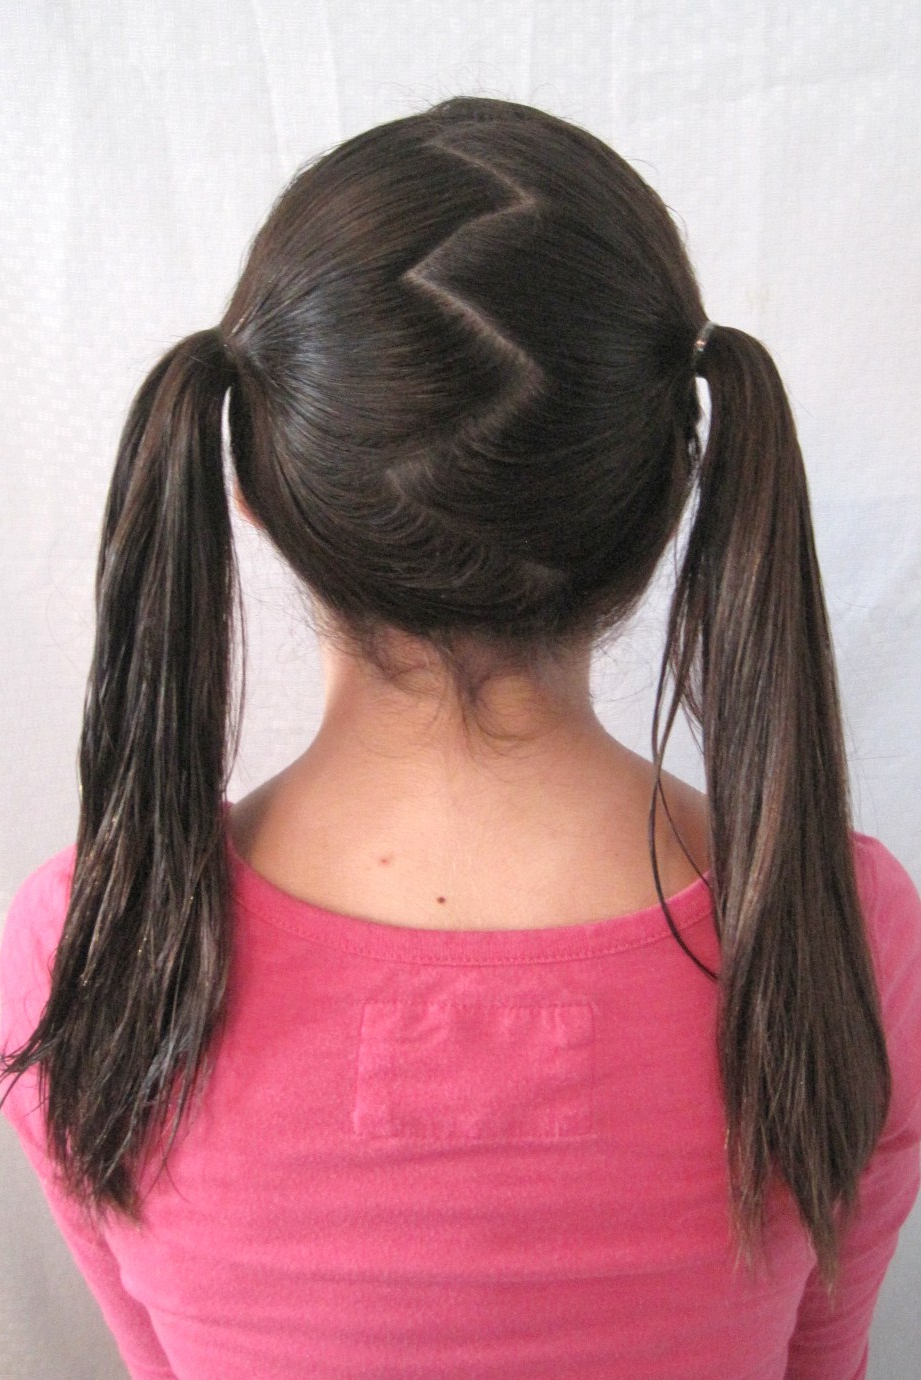 Most Current Zig Zag Ponytail Updo Hairstyles Pertaining To Day 22: The Zig Zag Part {30 Days, 30 Ways} (View 12 of 20)